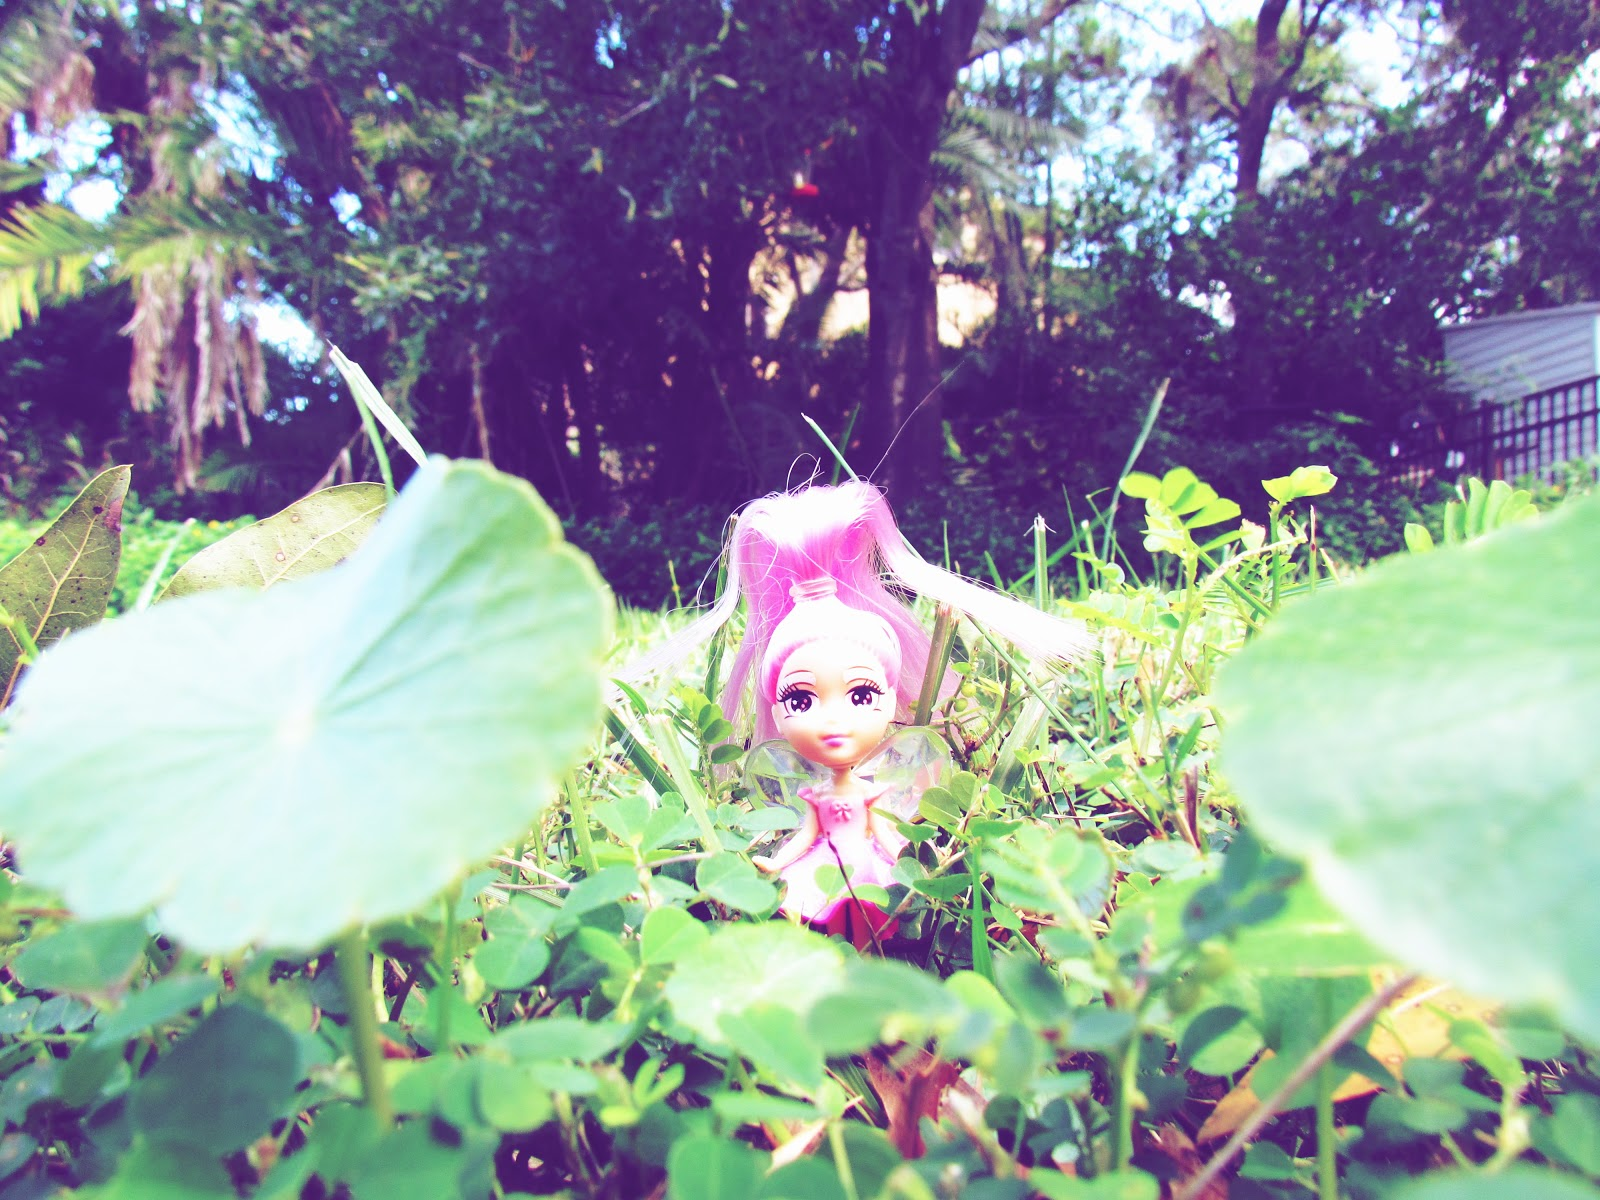 A cute plastic fairy doll in the grass with clovers and pink hair